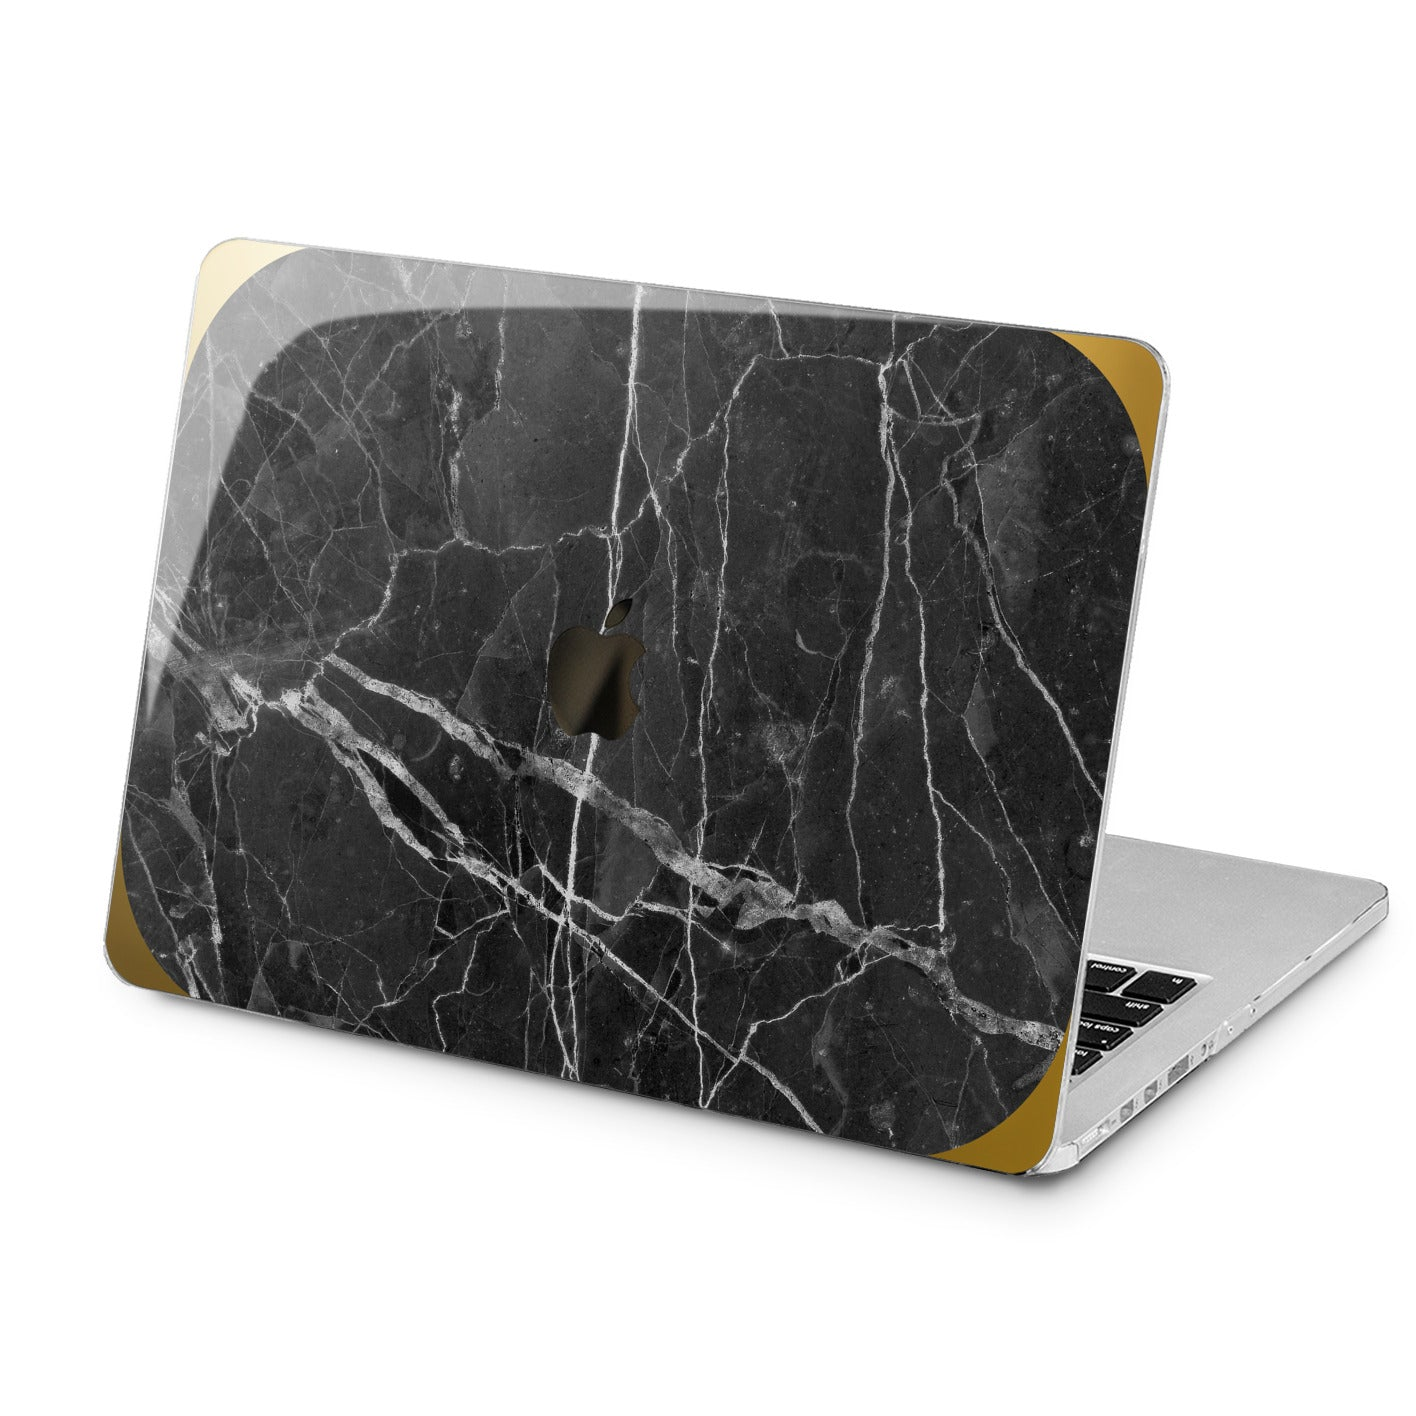 Lex Altern Black Marble Stone Case for your Laptop Apple Macbook.